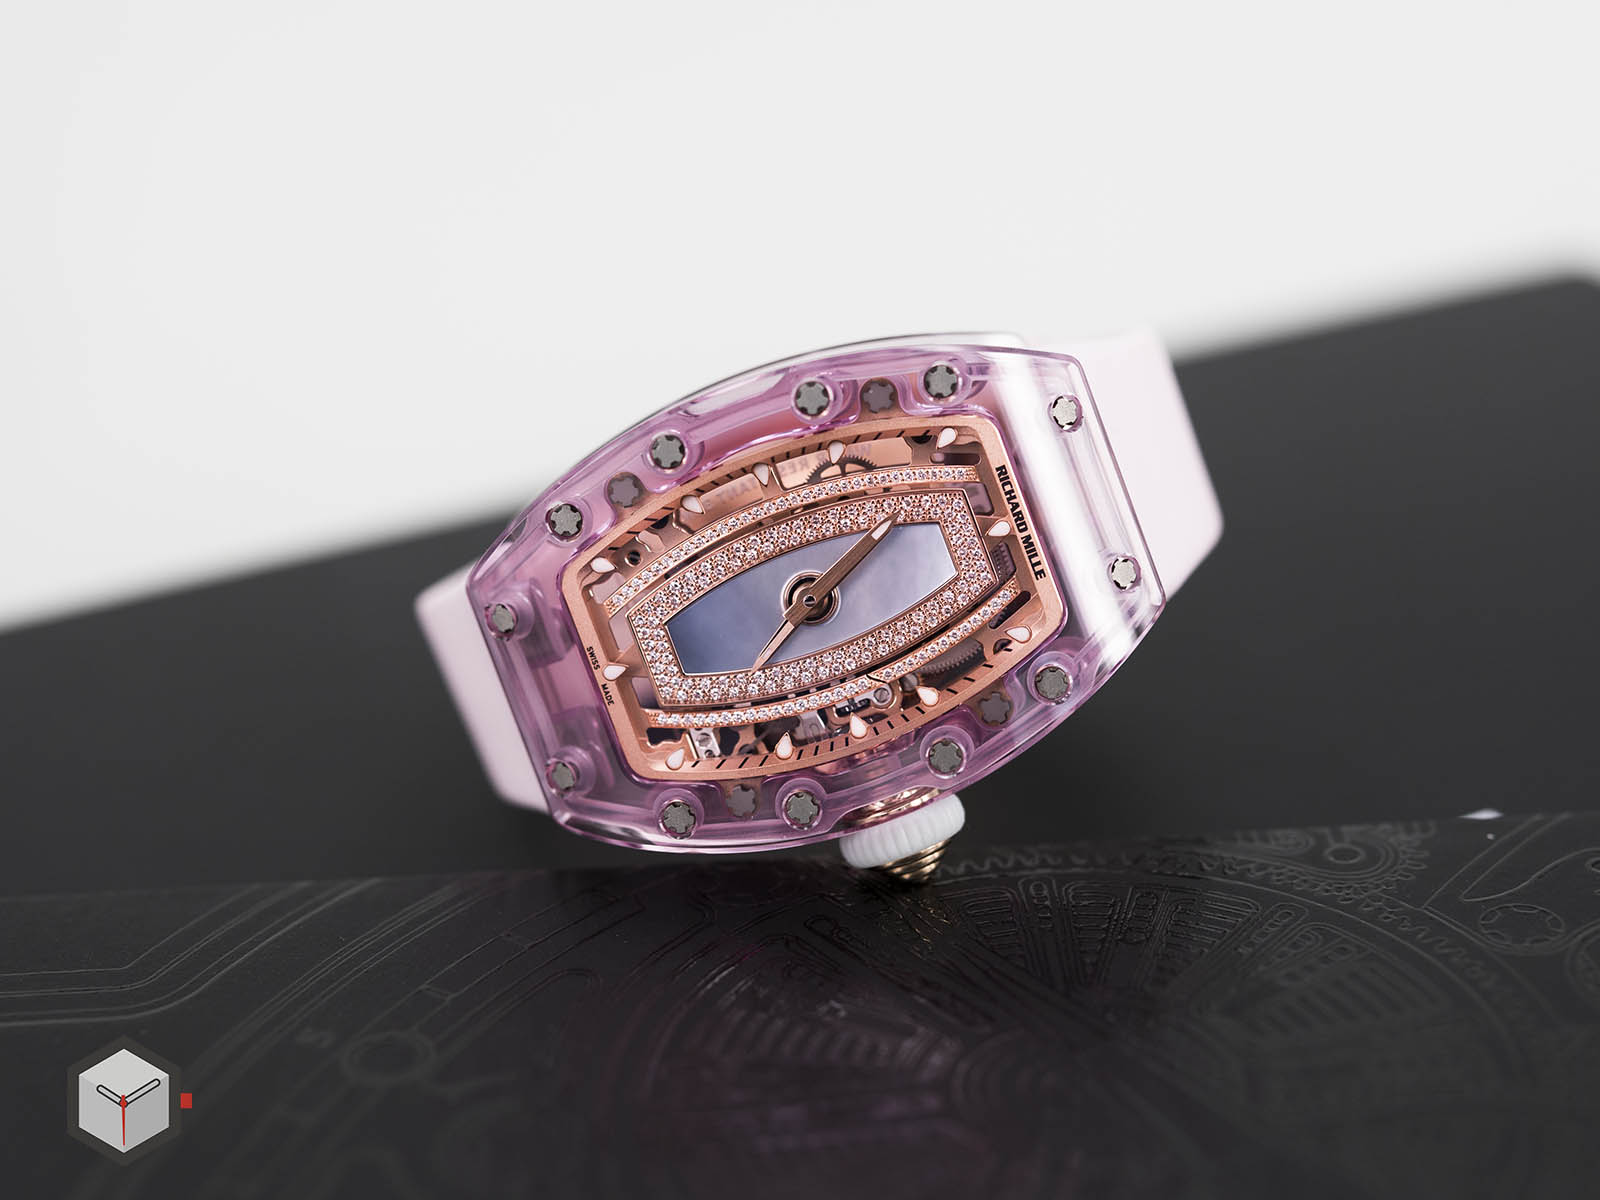 rm-07-02-richard-mille-automatic-pink-lady-sapphire-4.jpg